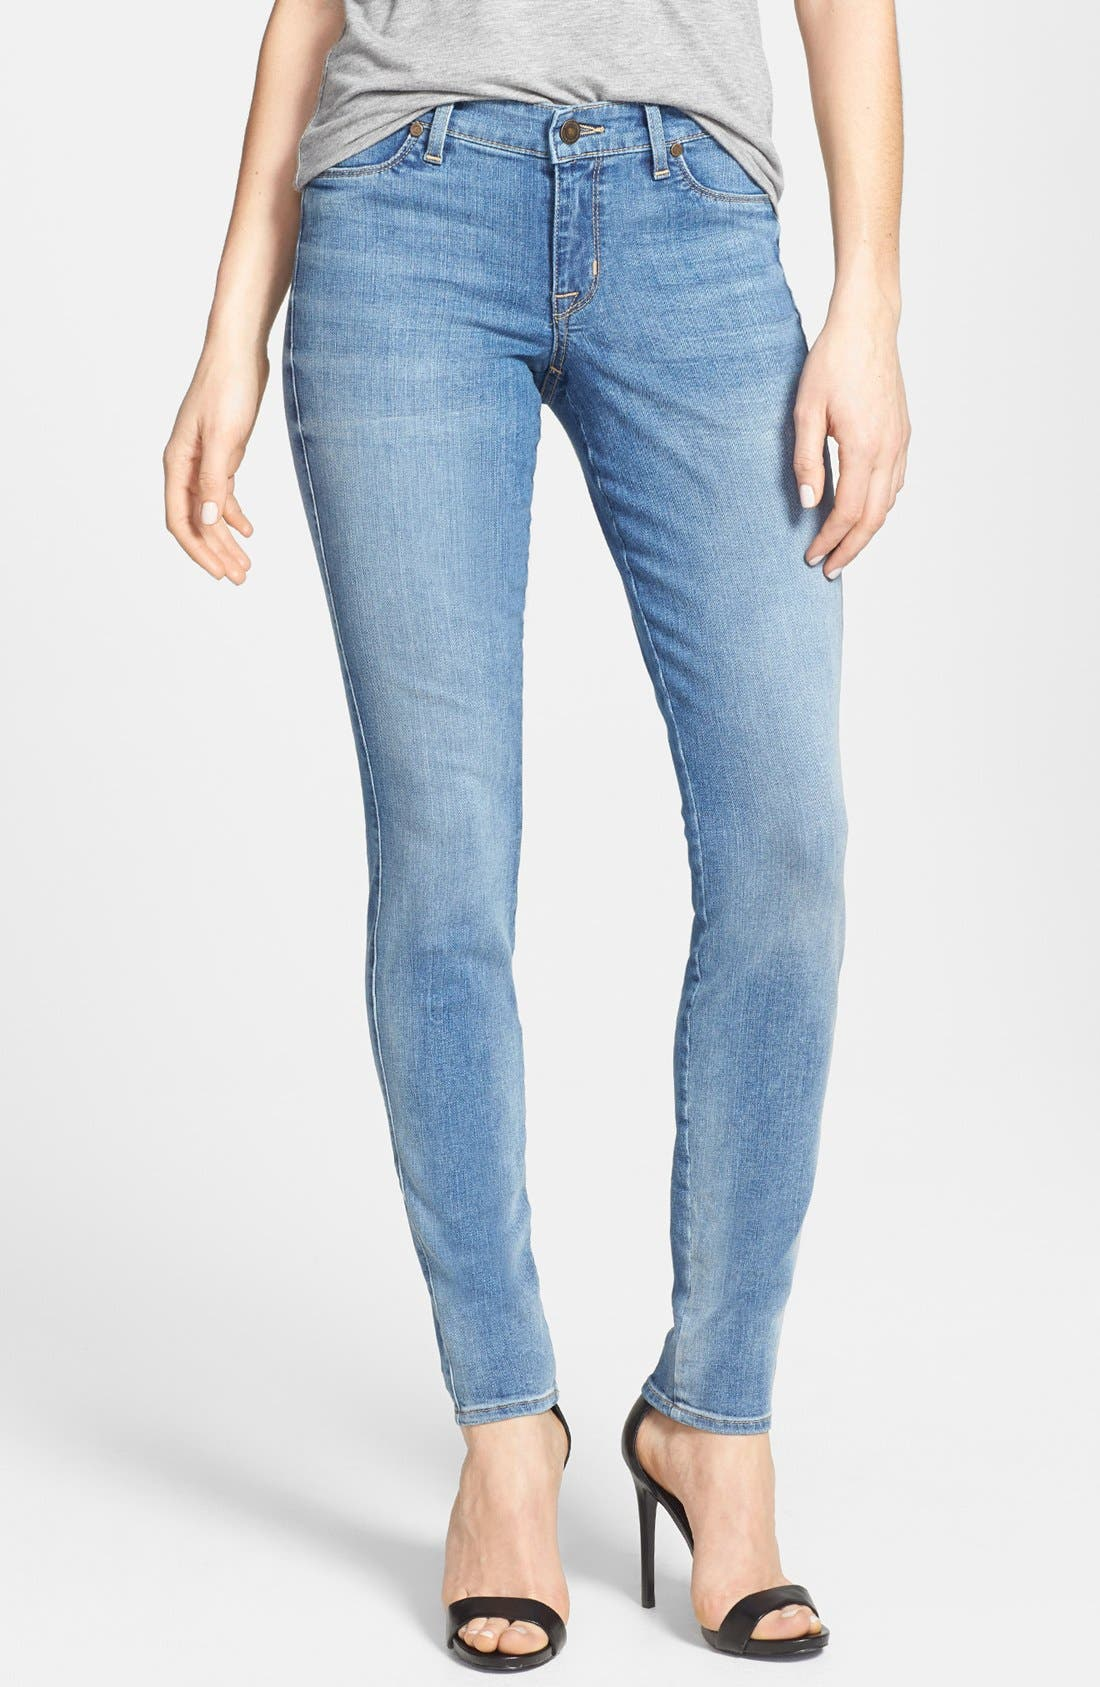 Alternate Image 1 Selected - CJ by Cookie Johnson 'Joy' Stretch Skinny Jeans (Syreeta)